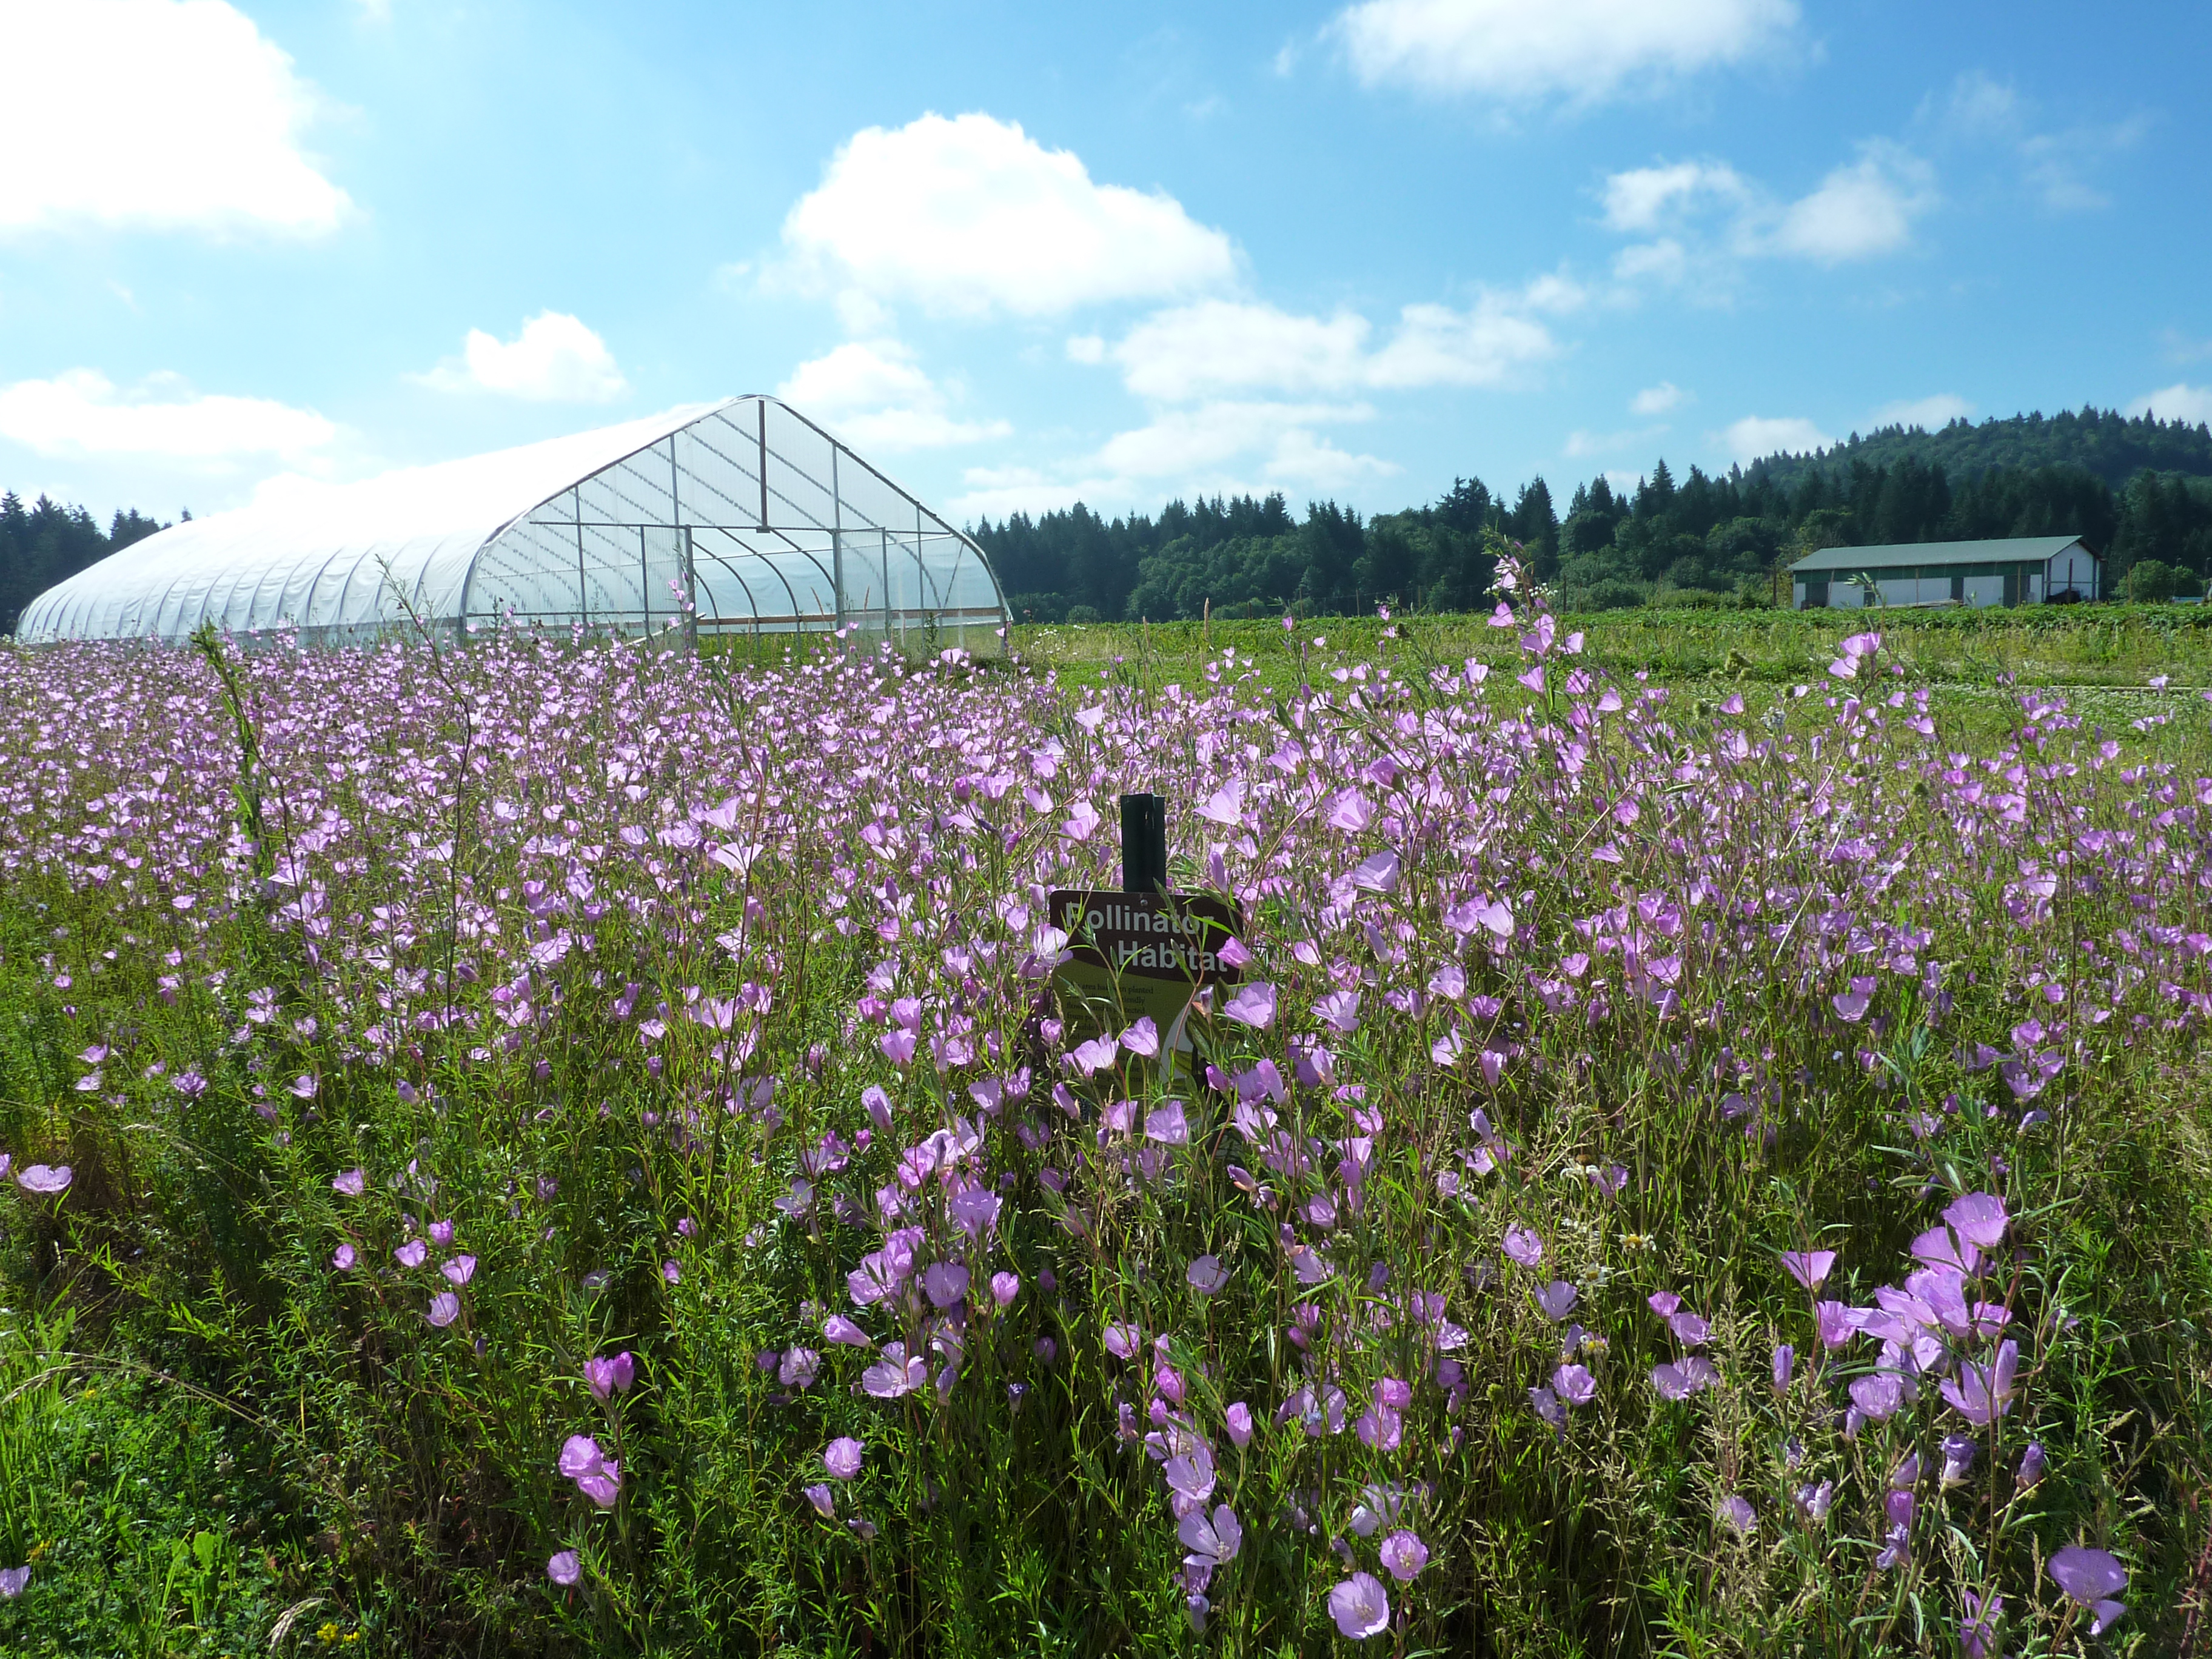 A field of purple flowers with a greenhouse in the background and the Xerces Society among the flowers.